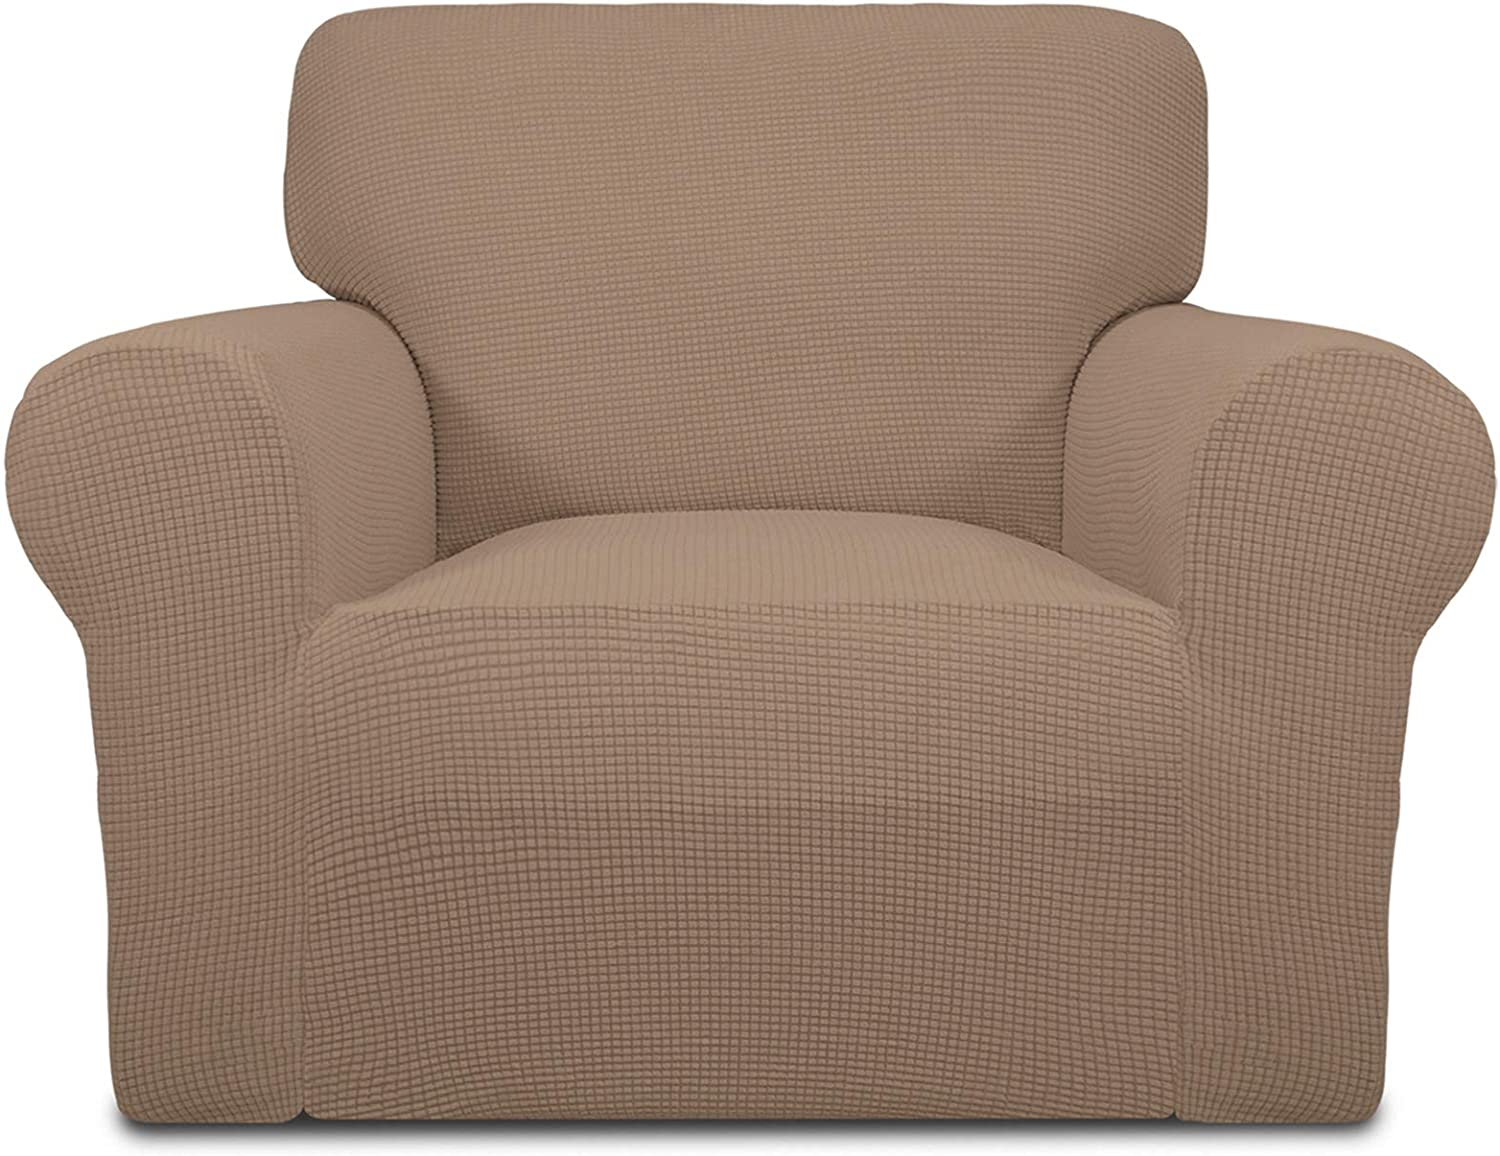 Easy-Going Stretch Oversized Chair Sofa Slipcover 1-Piece Couch Sofa Cover Furniture Protector Soft with Elastic Bottom for Kids Spandex Jacquard Fabric Small Checks Camel